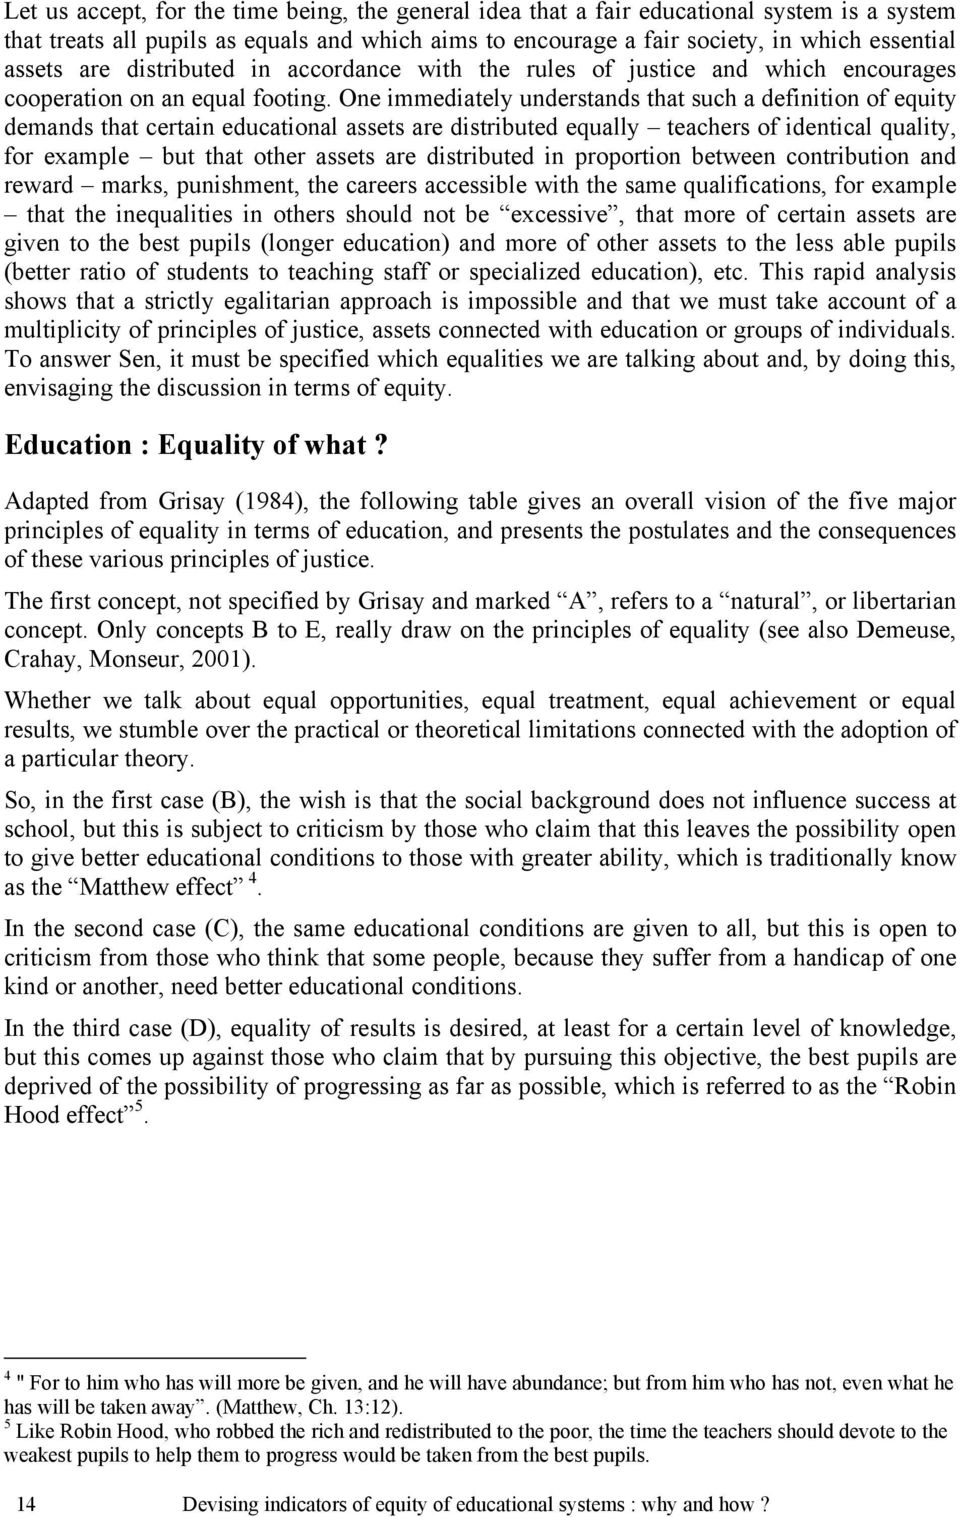 One immediately understands that such a definition of equity demands that certain educational assets are distributed equally teachers of identical quality, for example but that other assets are